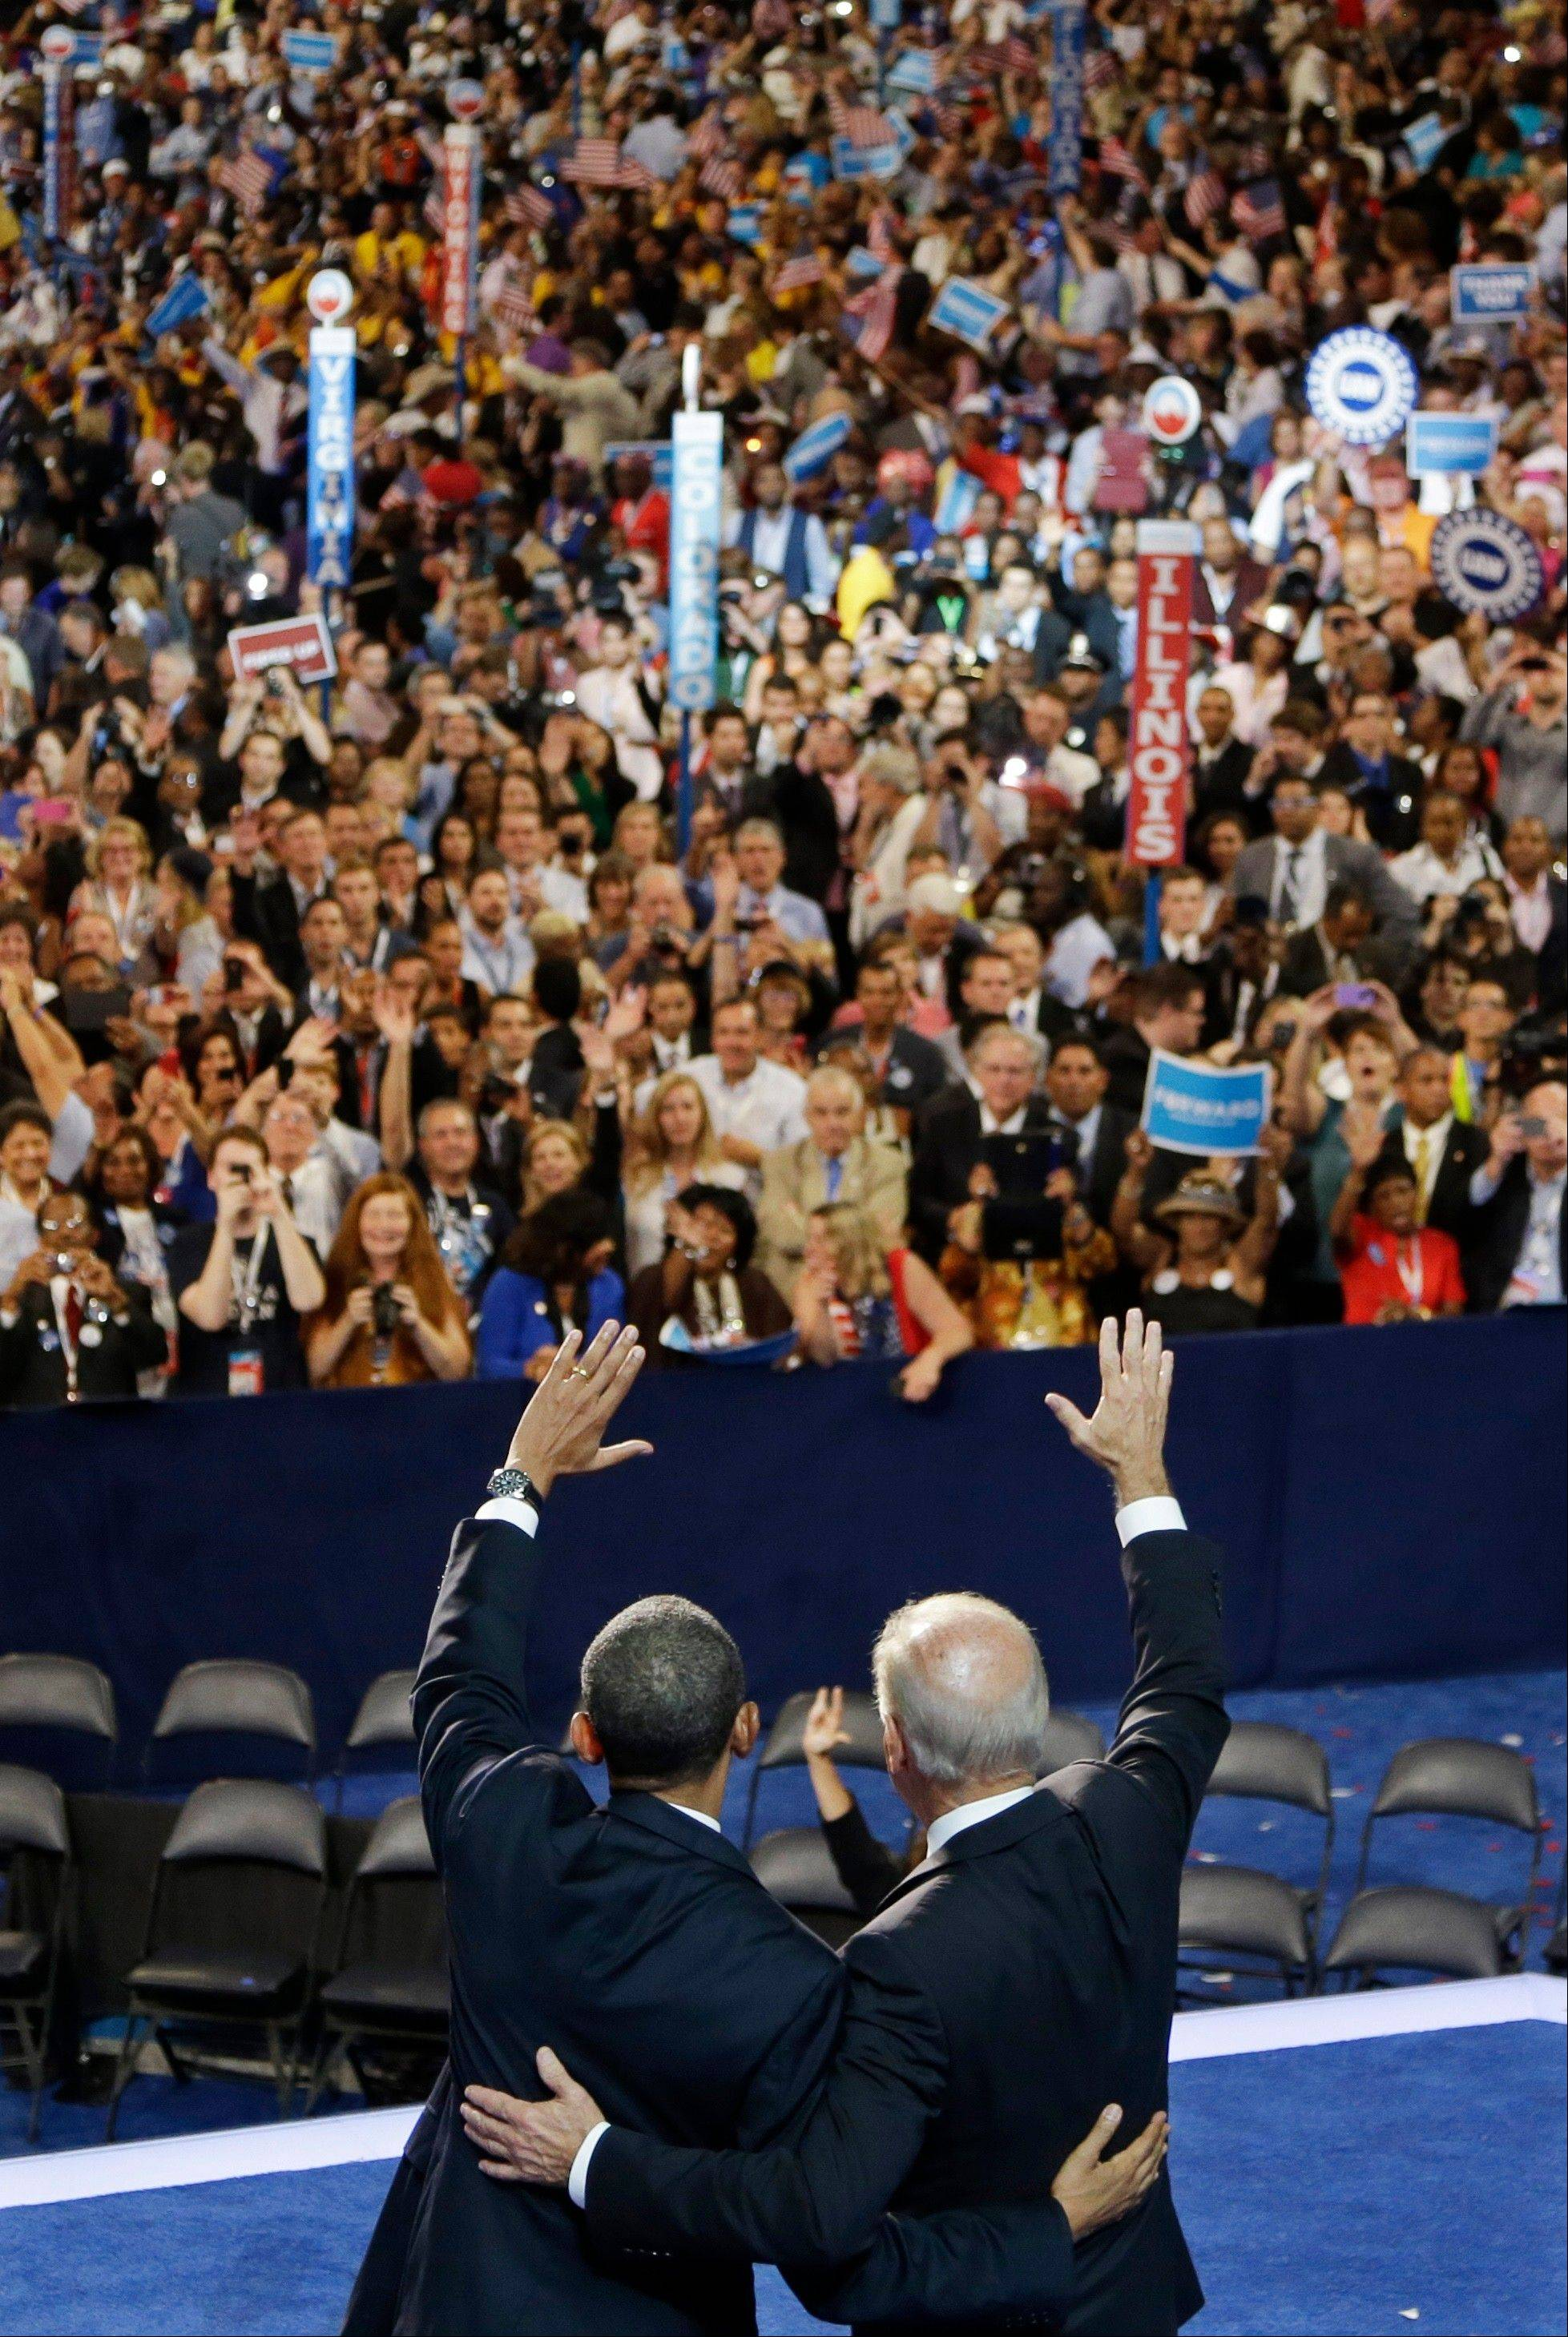 President Barack Obama, left, and Vice President Joe Biden wave to delegates at the Democratic National Convention in Charlotte, N.C., on Thursday, Sept. 6, 2012.